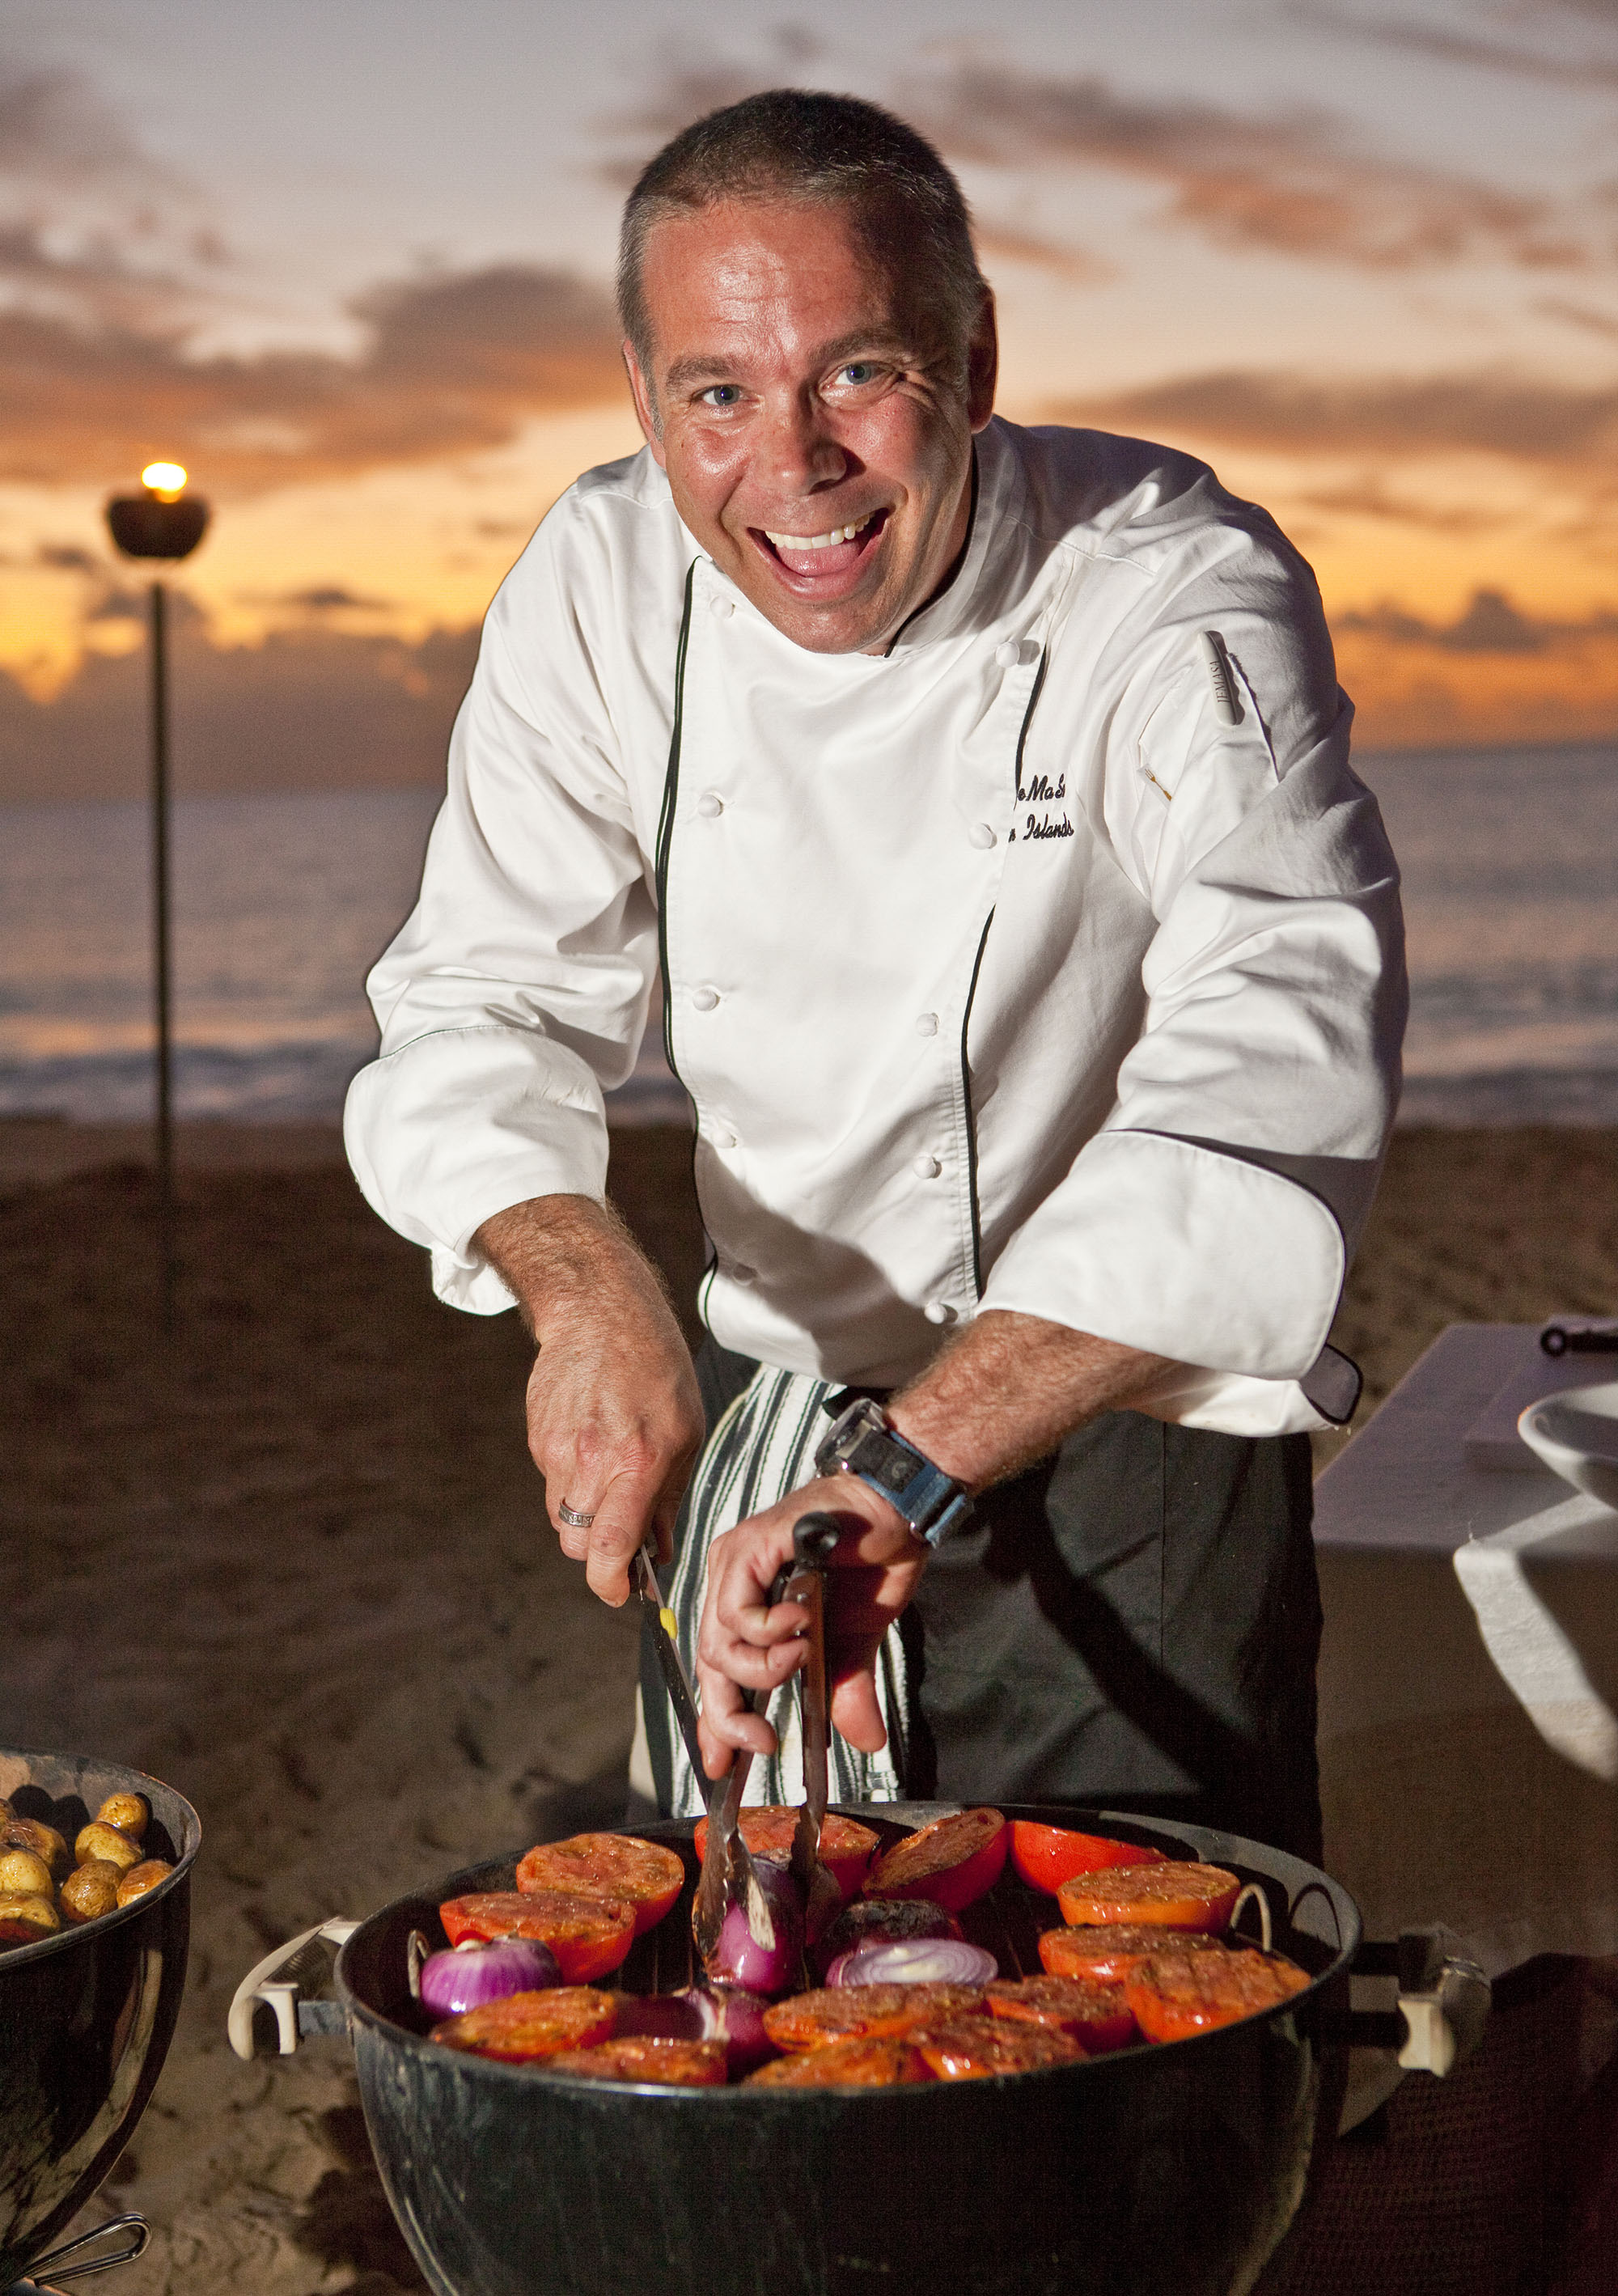 chef_2365©Jim Raycroft.jpg